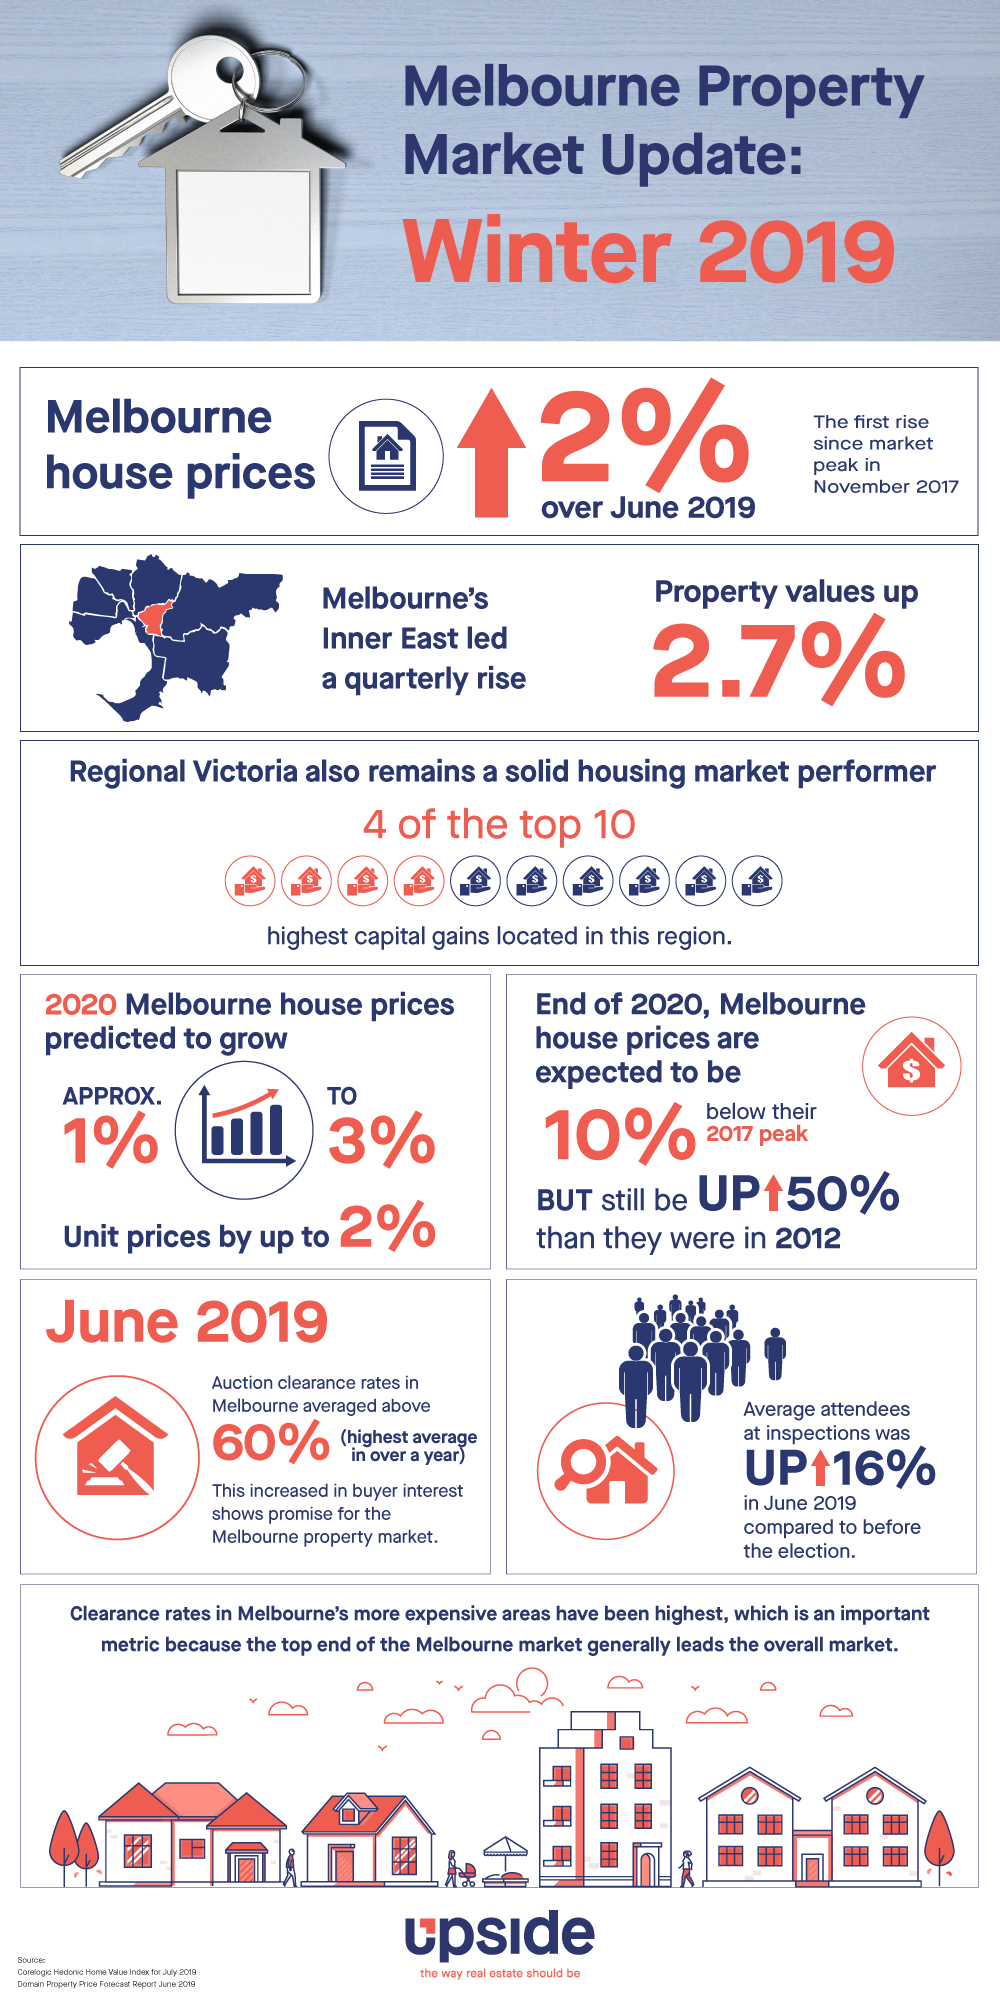 Melbourne Property Market Update Winter 2019